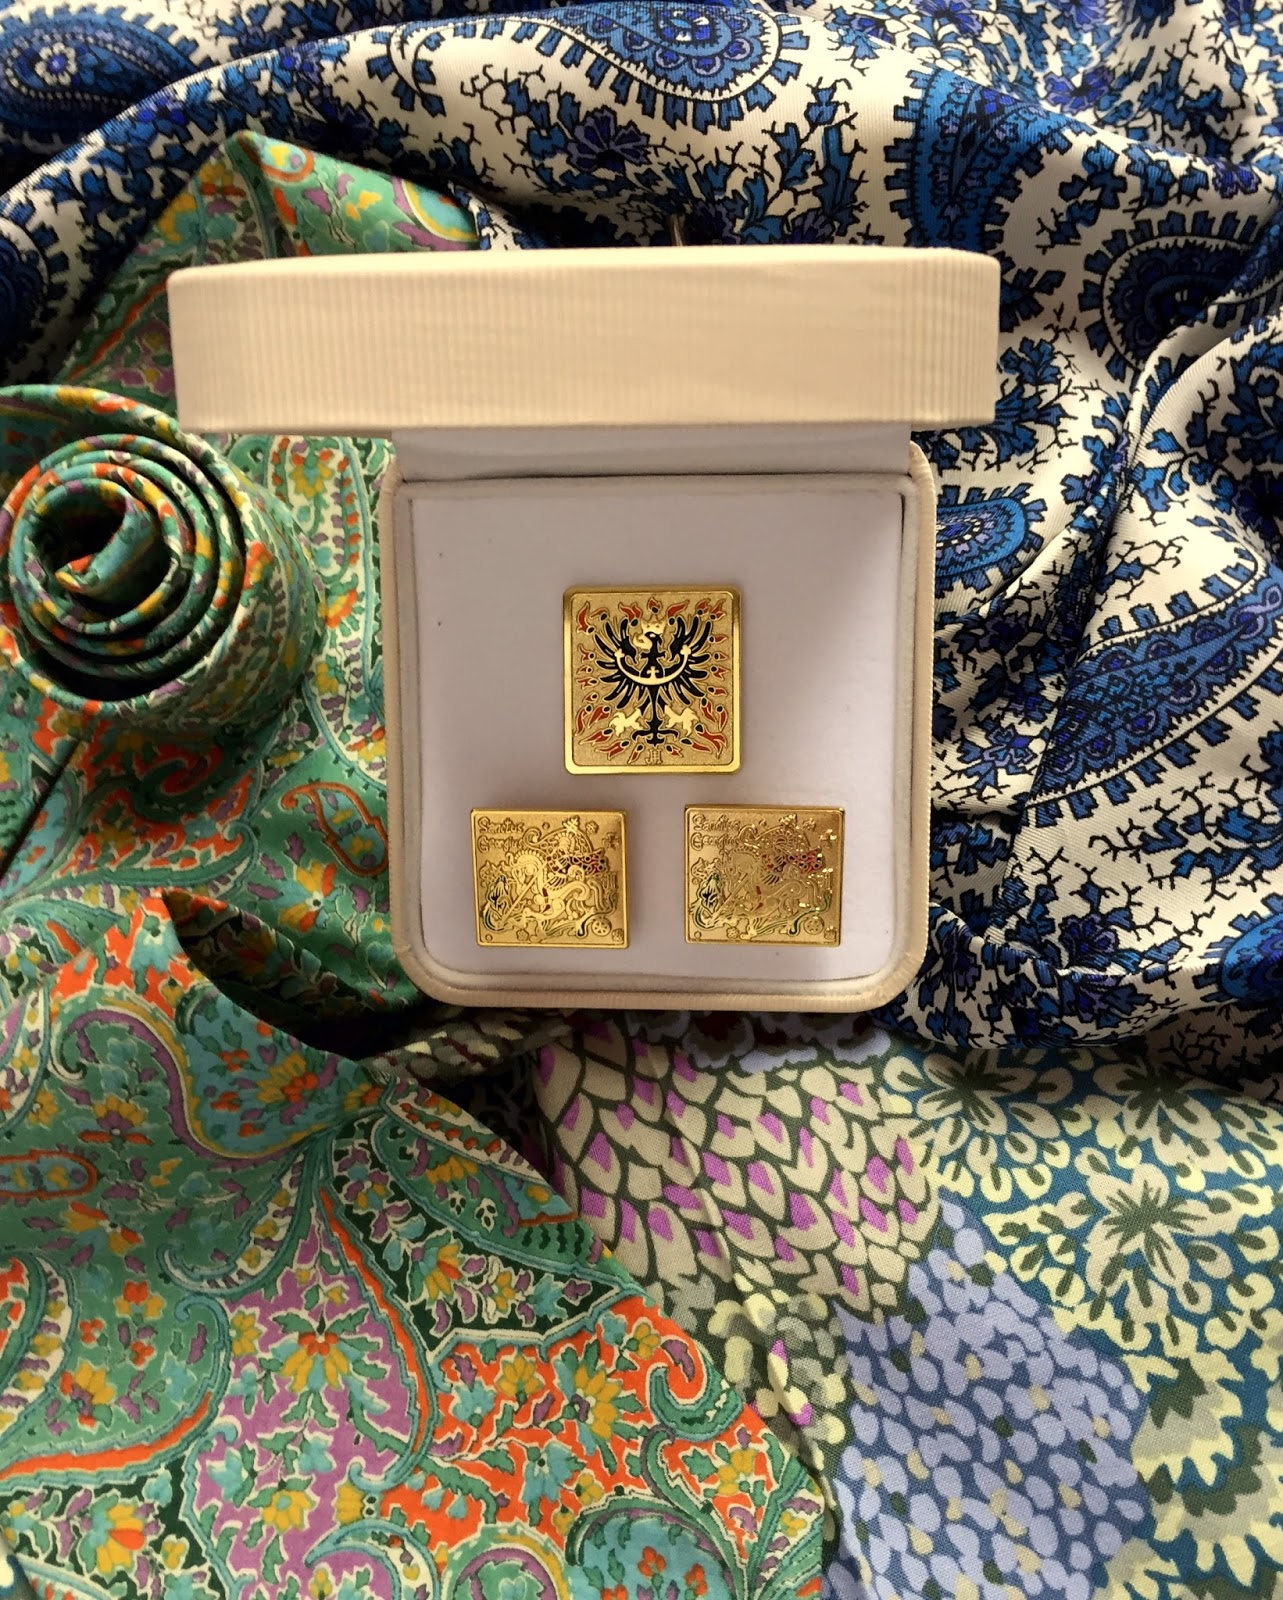 The gift box with cufflinks and the lapel badge